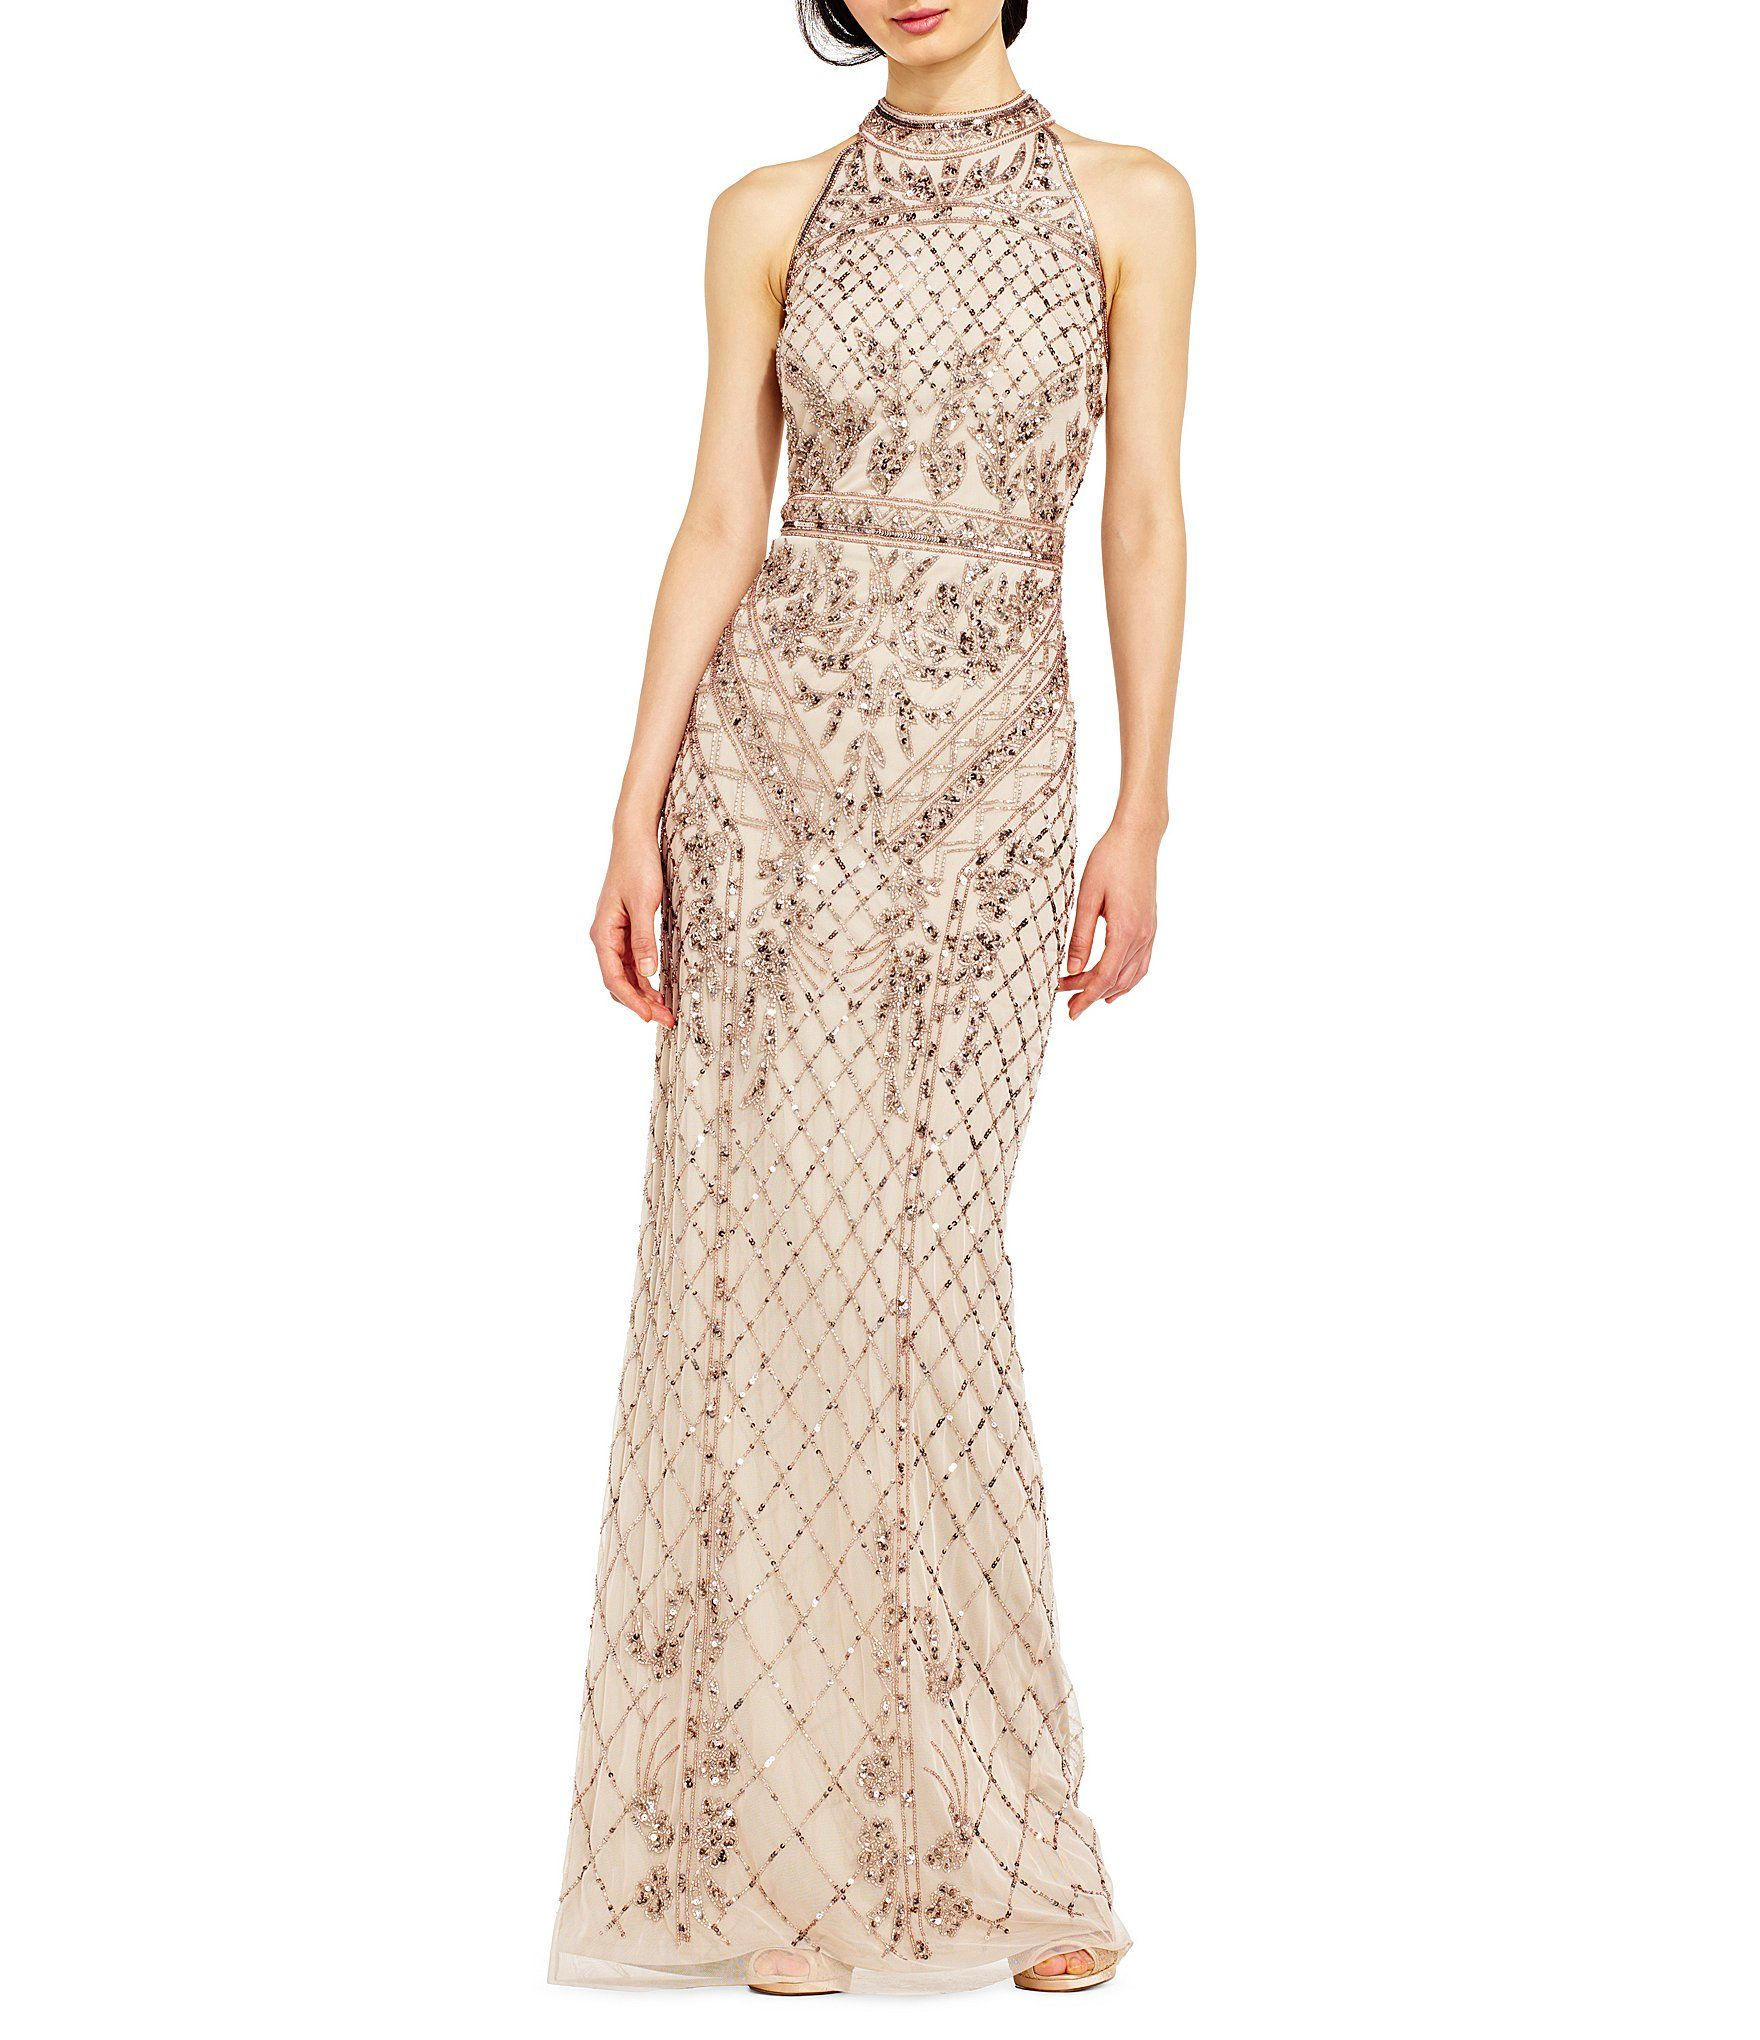 Adrianna Papell Halter Beaded Column Gown | Adrianna papell ...